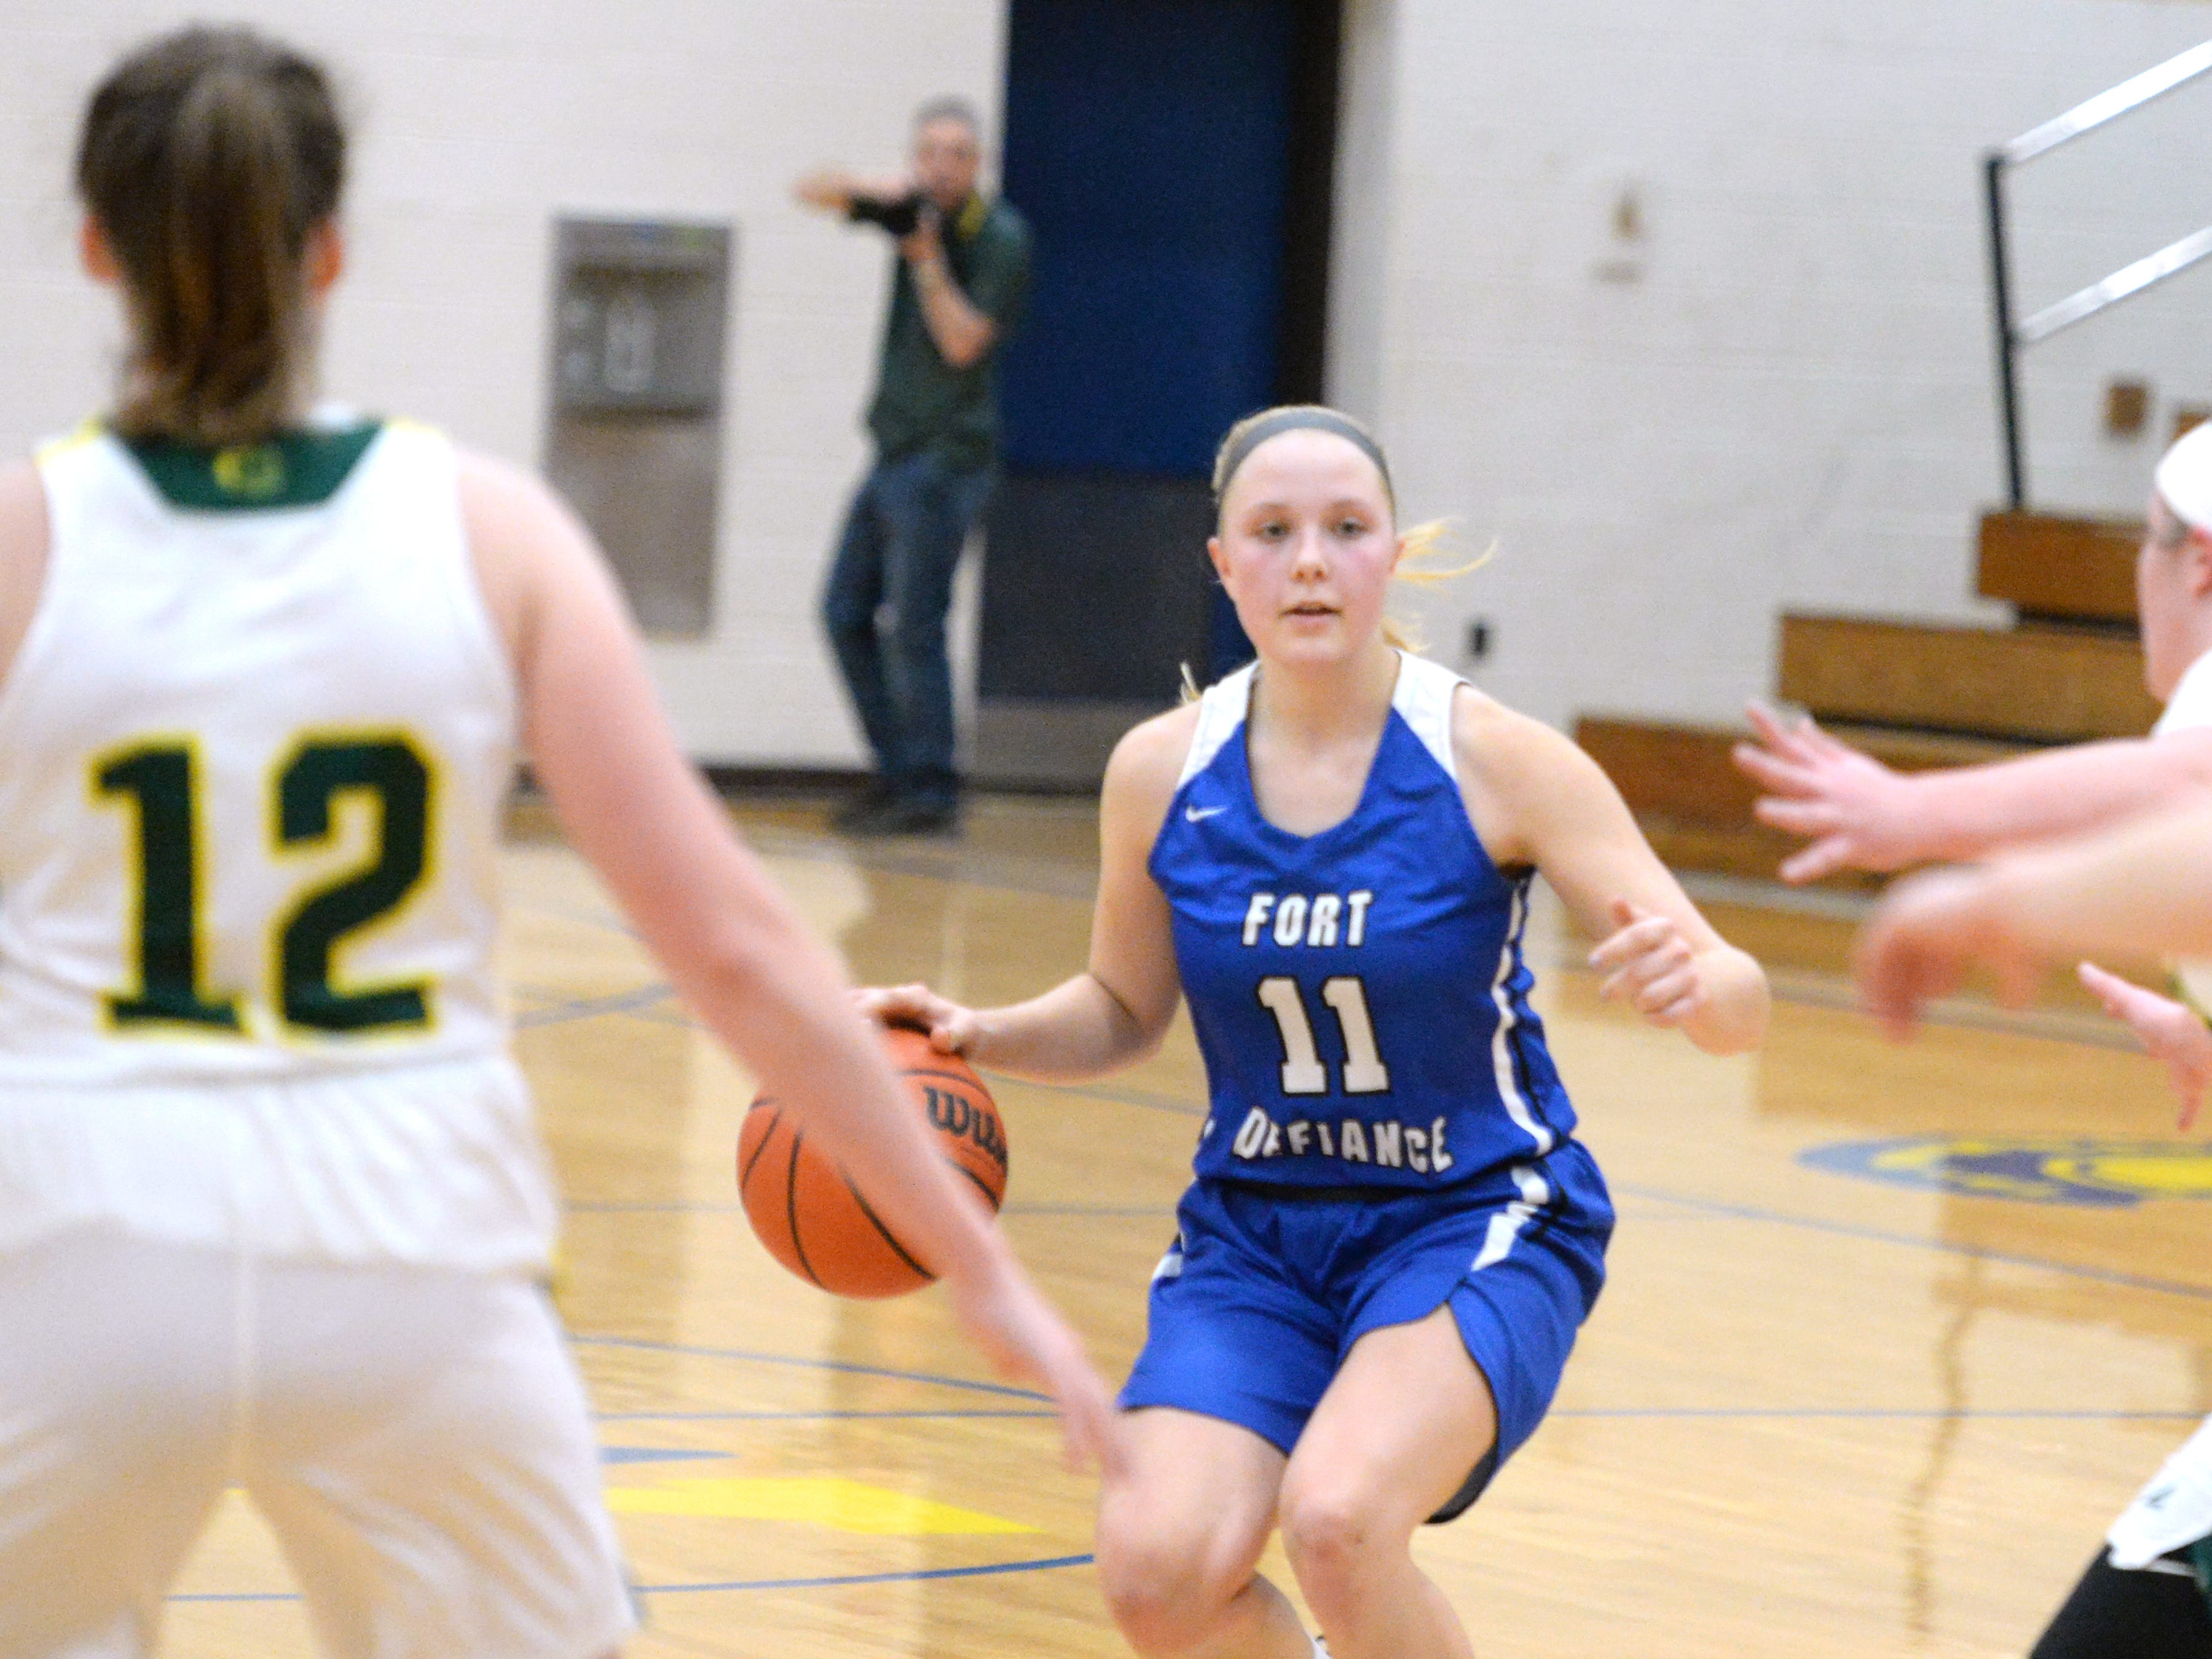 Fort Defiance's Jordan Schulz finished with six points Saturday at the Play of Preemies Showcase at Western Albemarle High School.